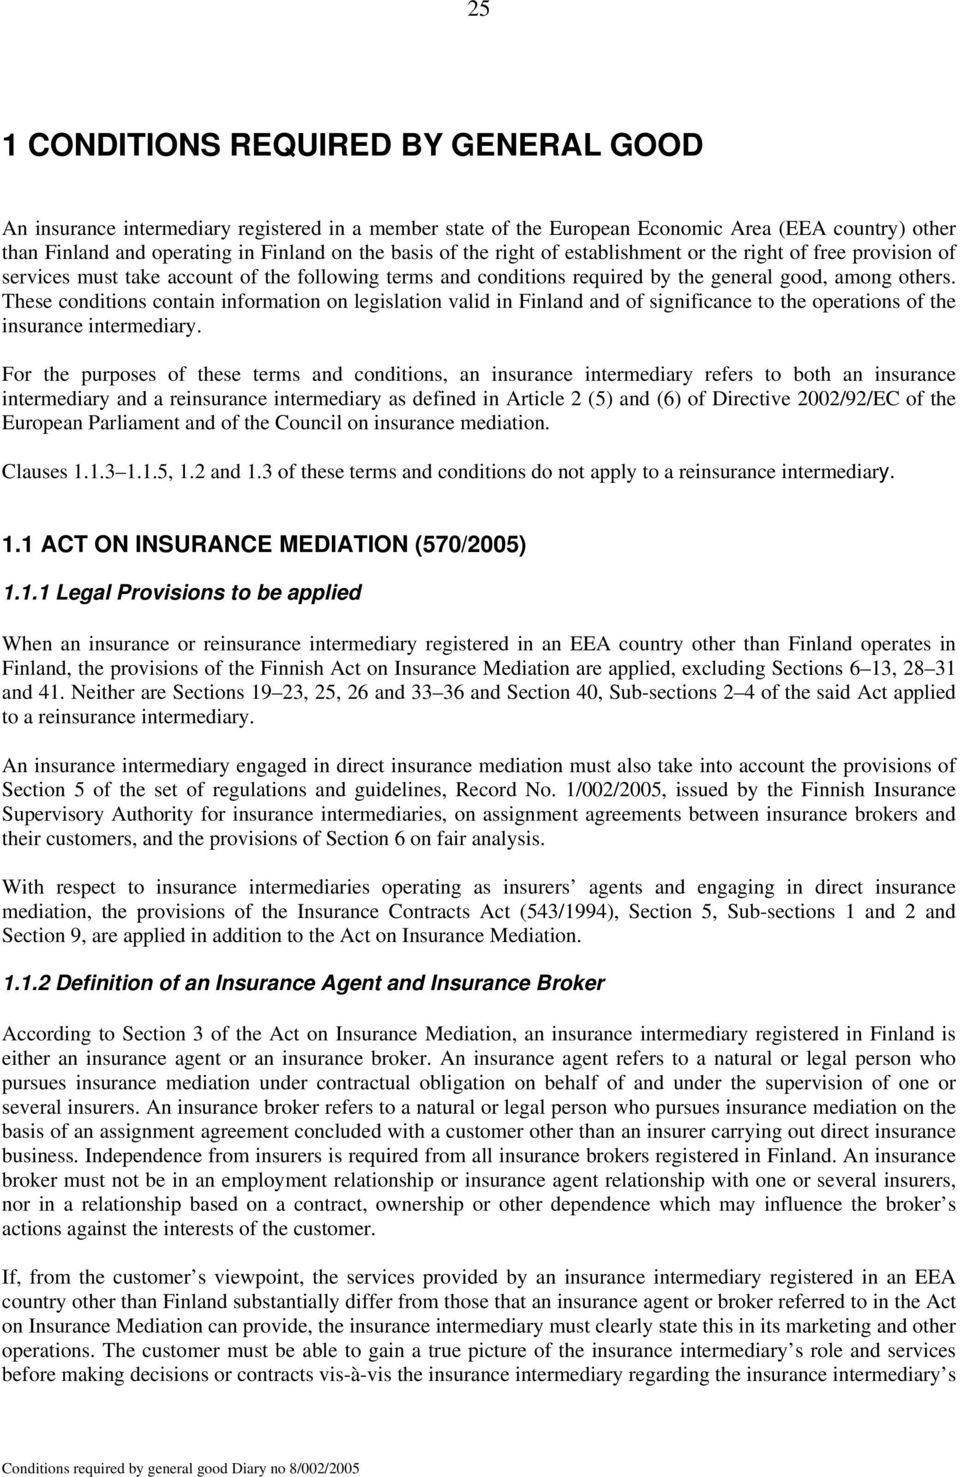 These conditions contain information on legislation valid in Finland and of significance to the operations of the insurance intermediary.